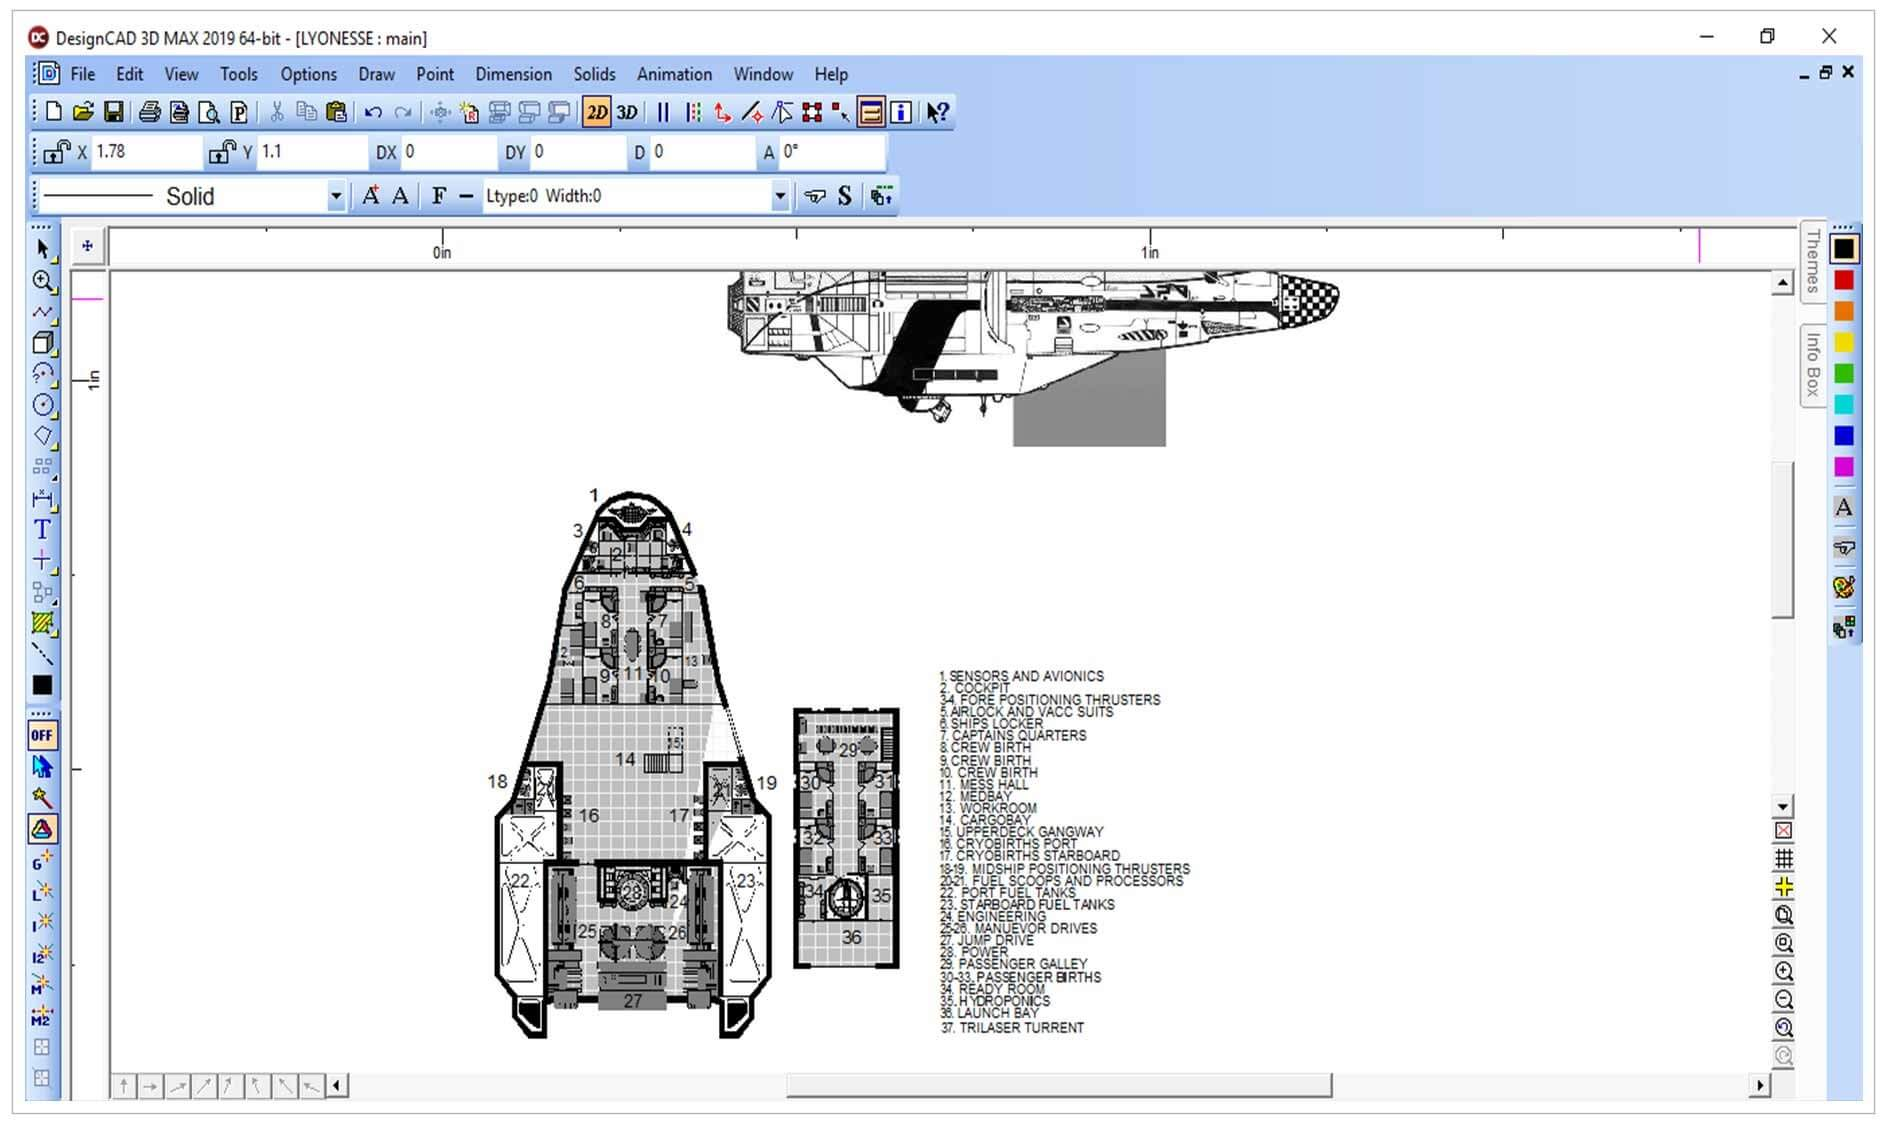 DesignCAD 2D 2019 - TurboCAD via IMSI Design